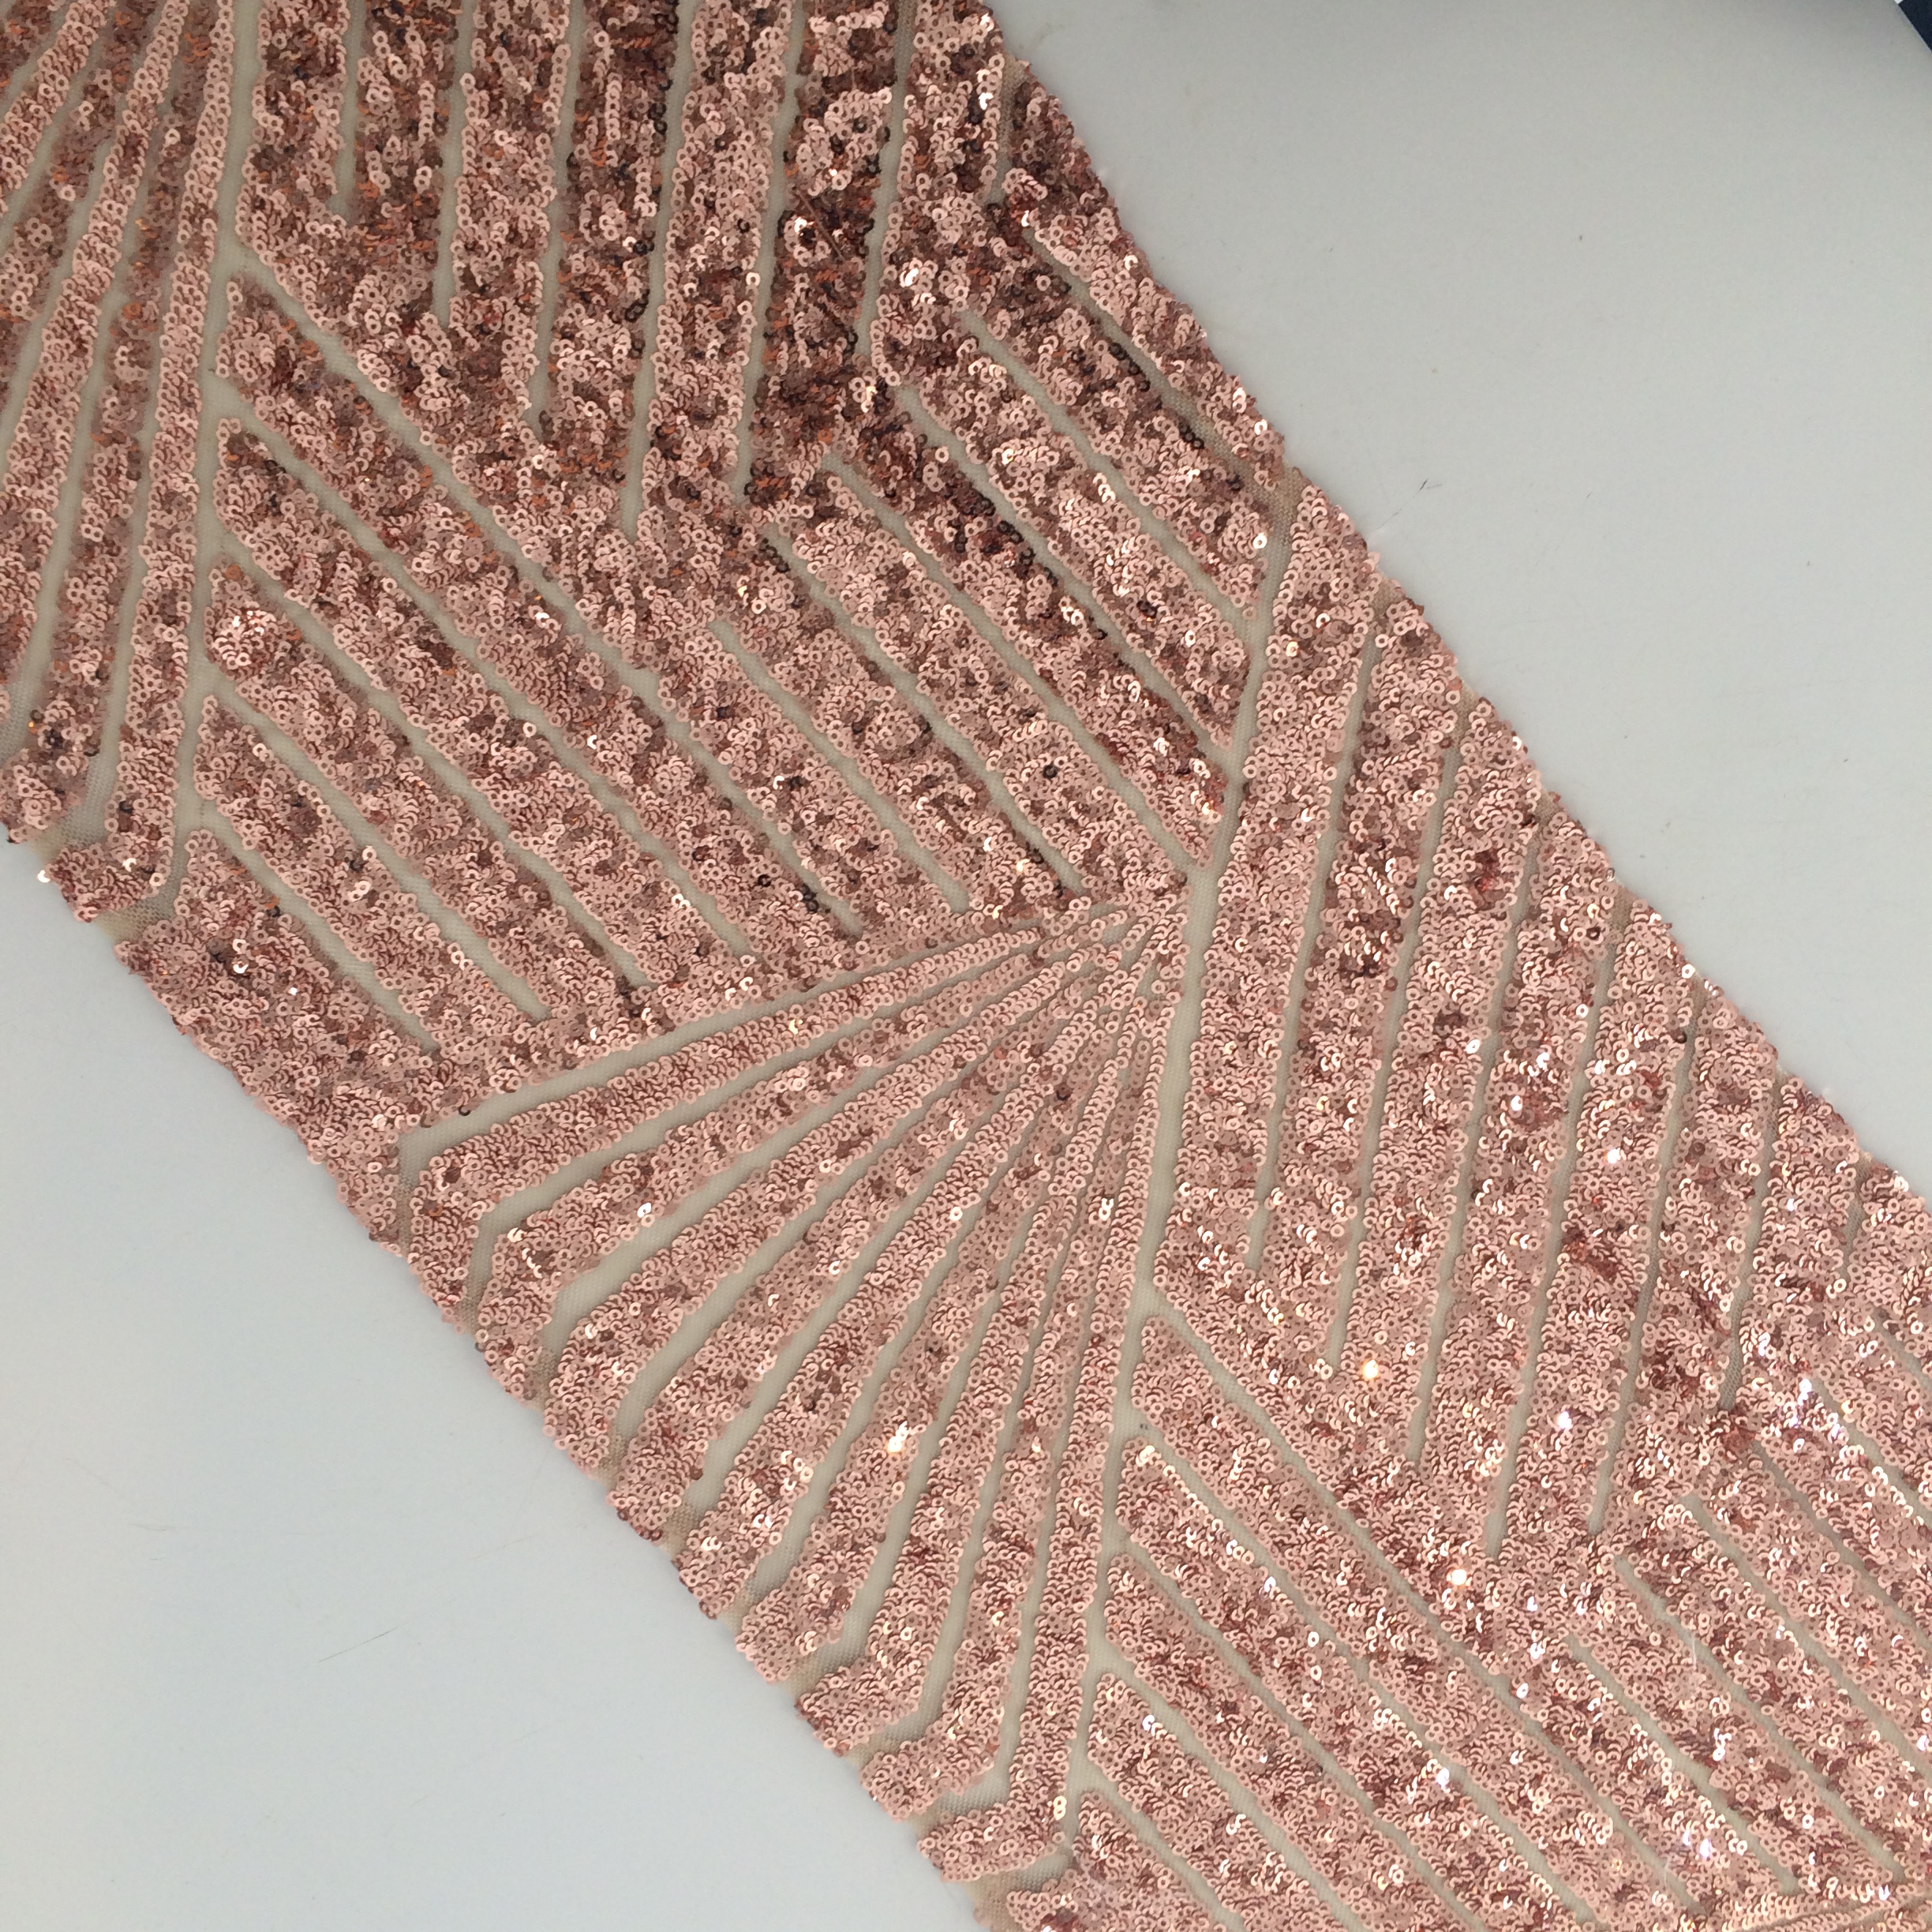 Brand-new Sequin Table Runner - Art Deco Rose Gold | The Pretty Prop Shop  ZW82